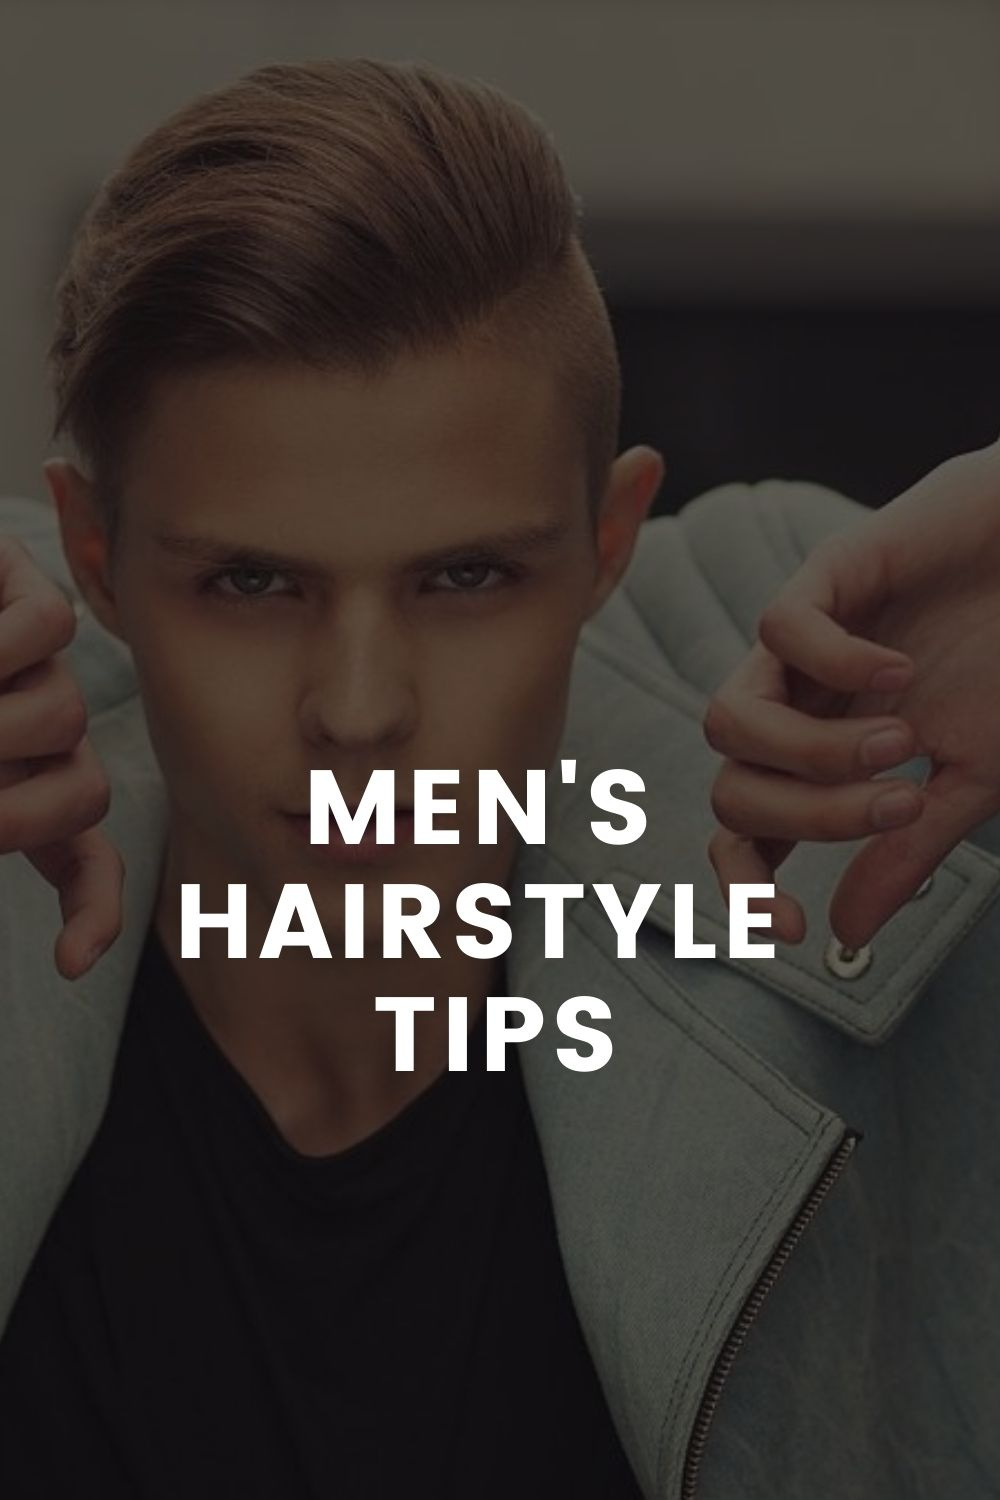 Men's Hair Styling Products & Tips